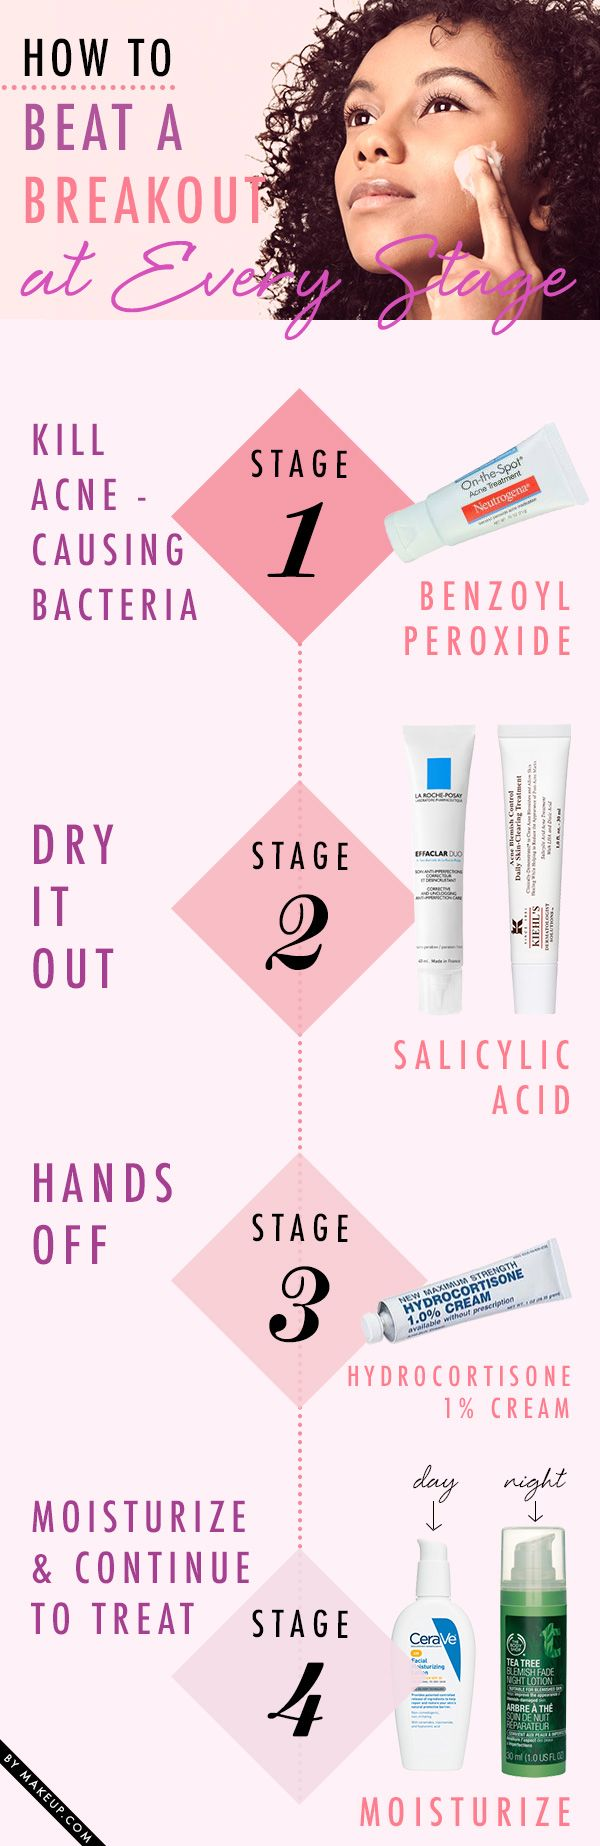 how to avoid acne breakouts